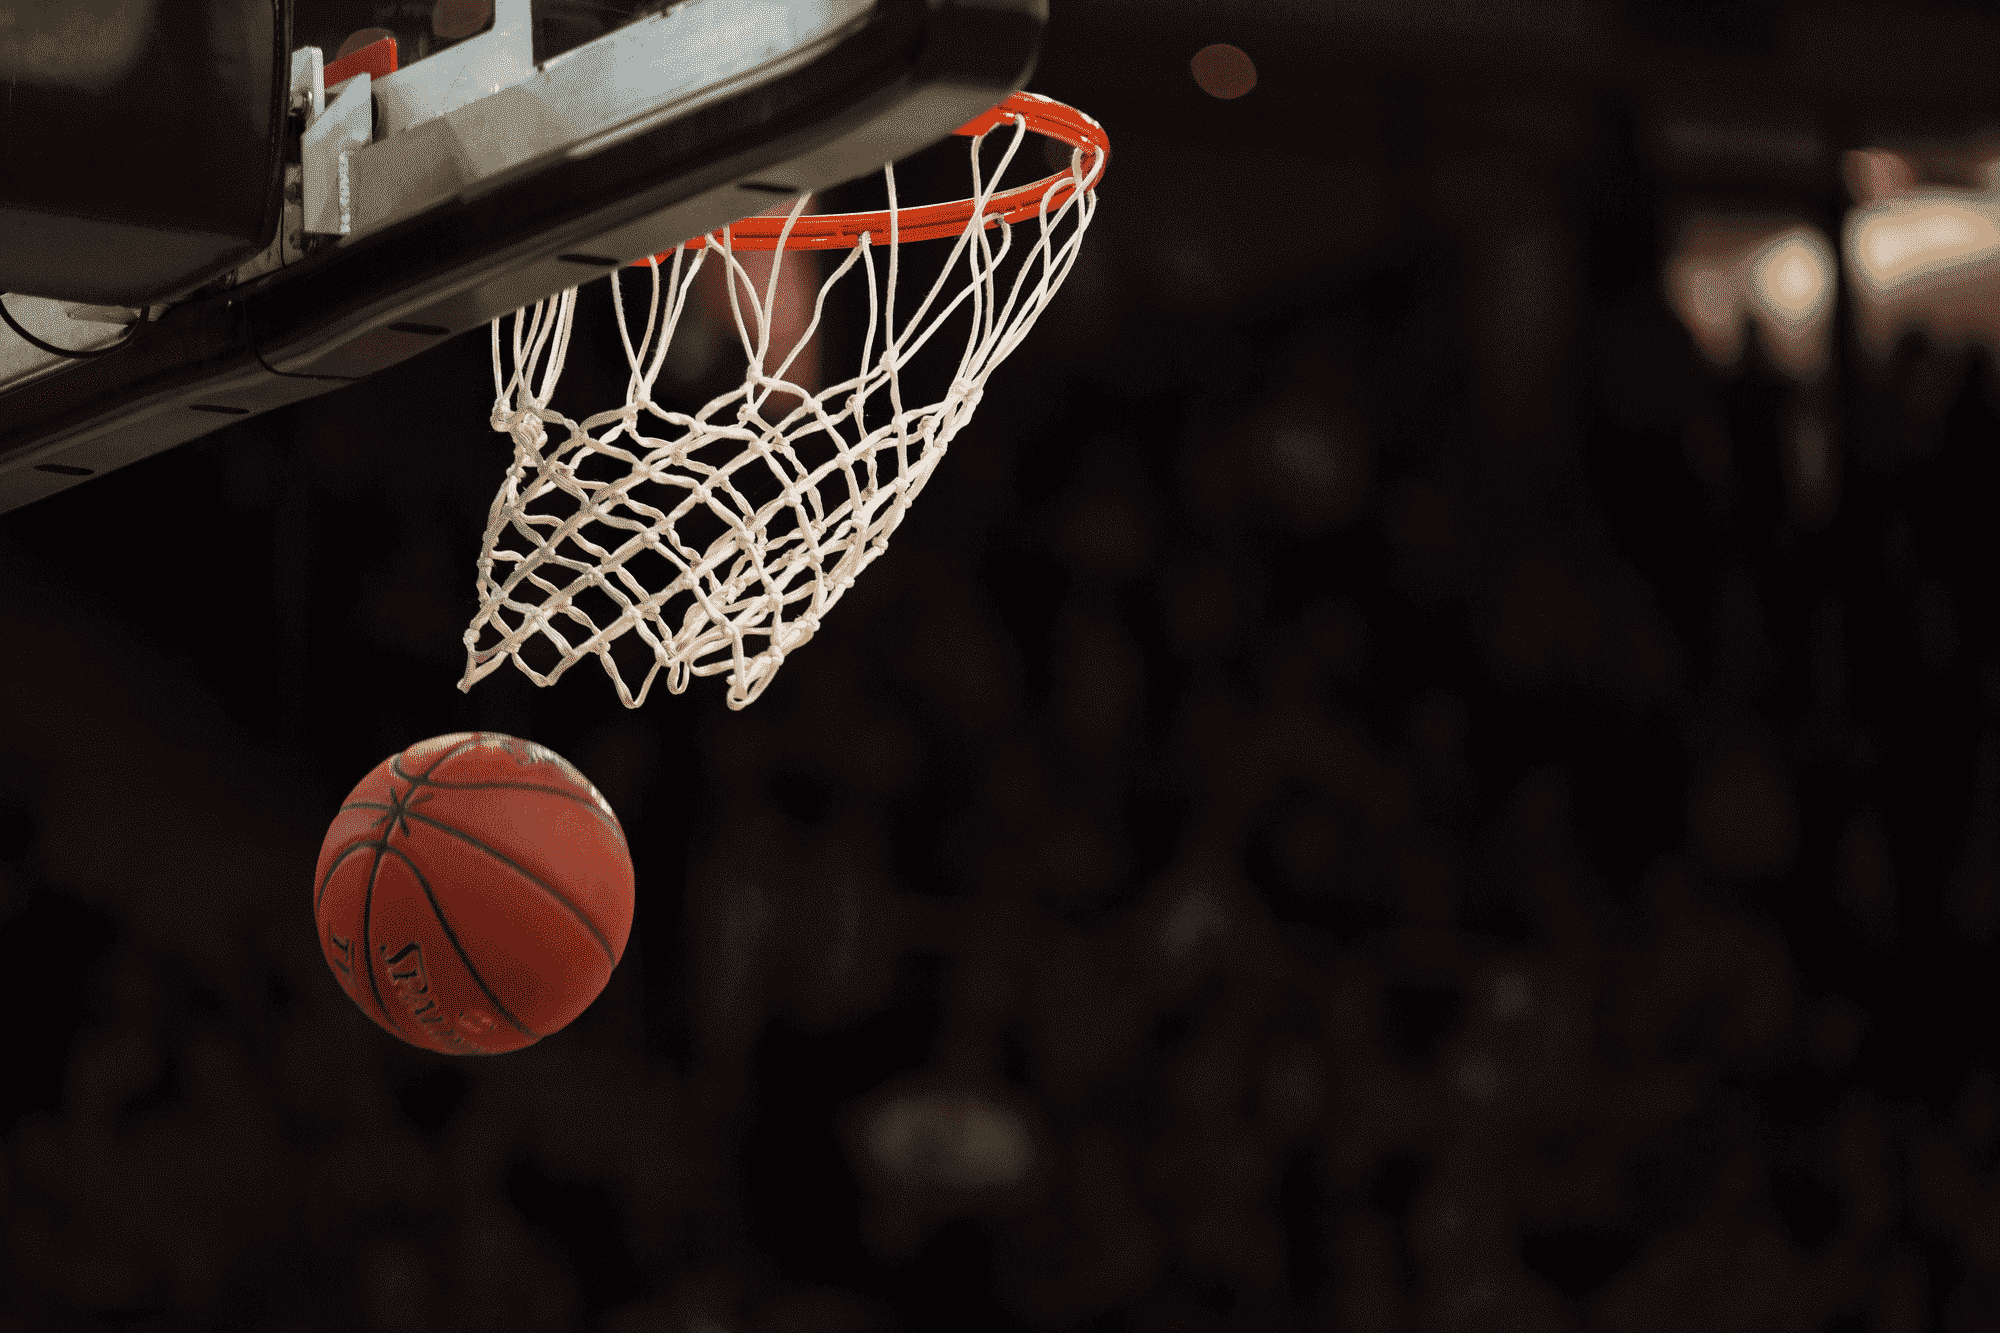 NBA Brands Trend on BrandGraph® After Season Begins